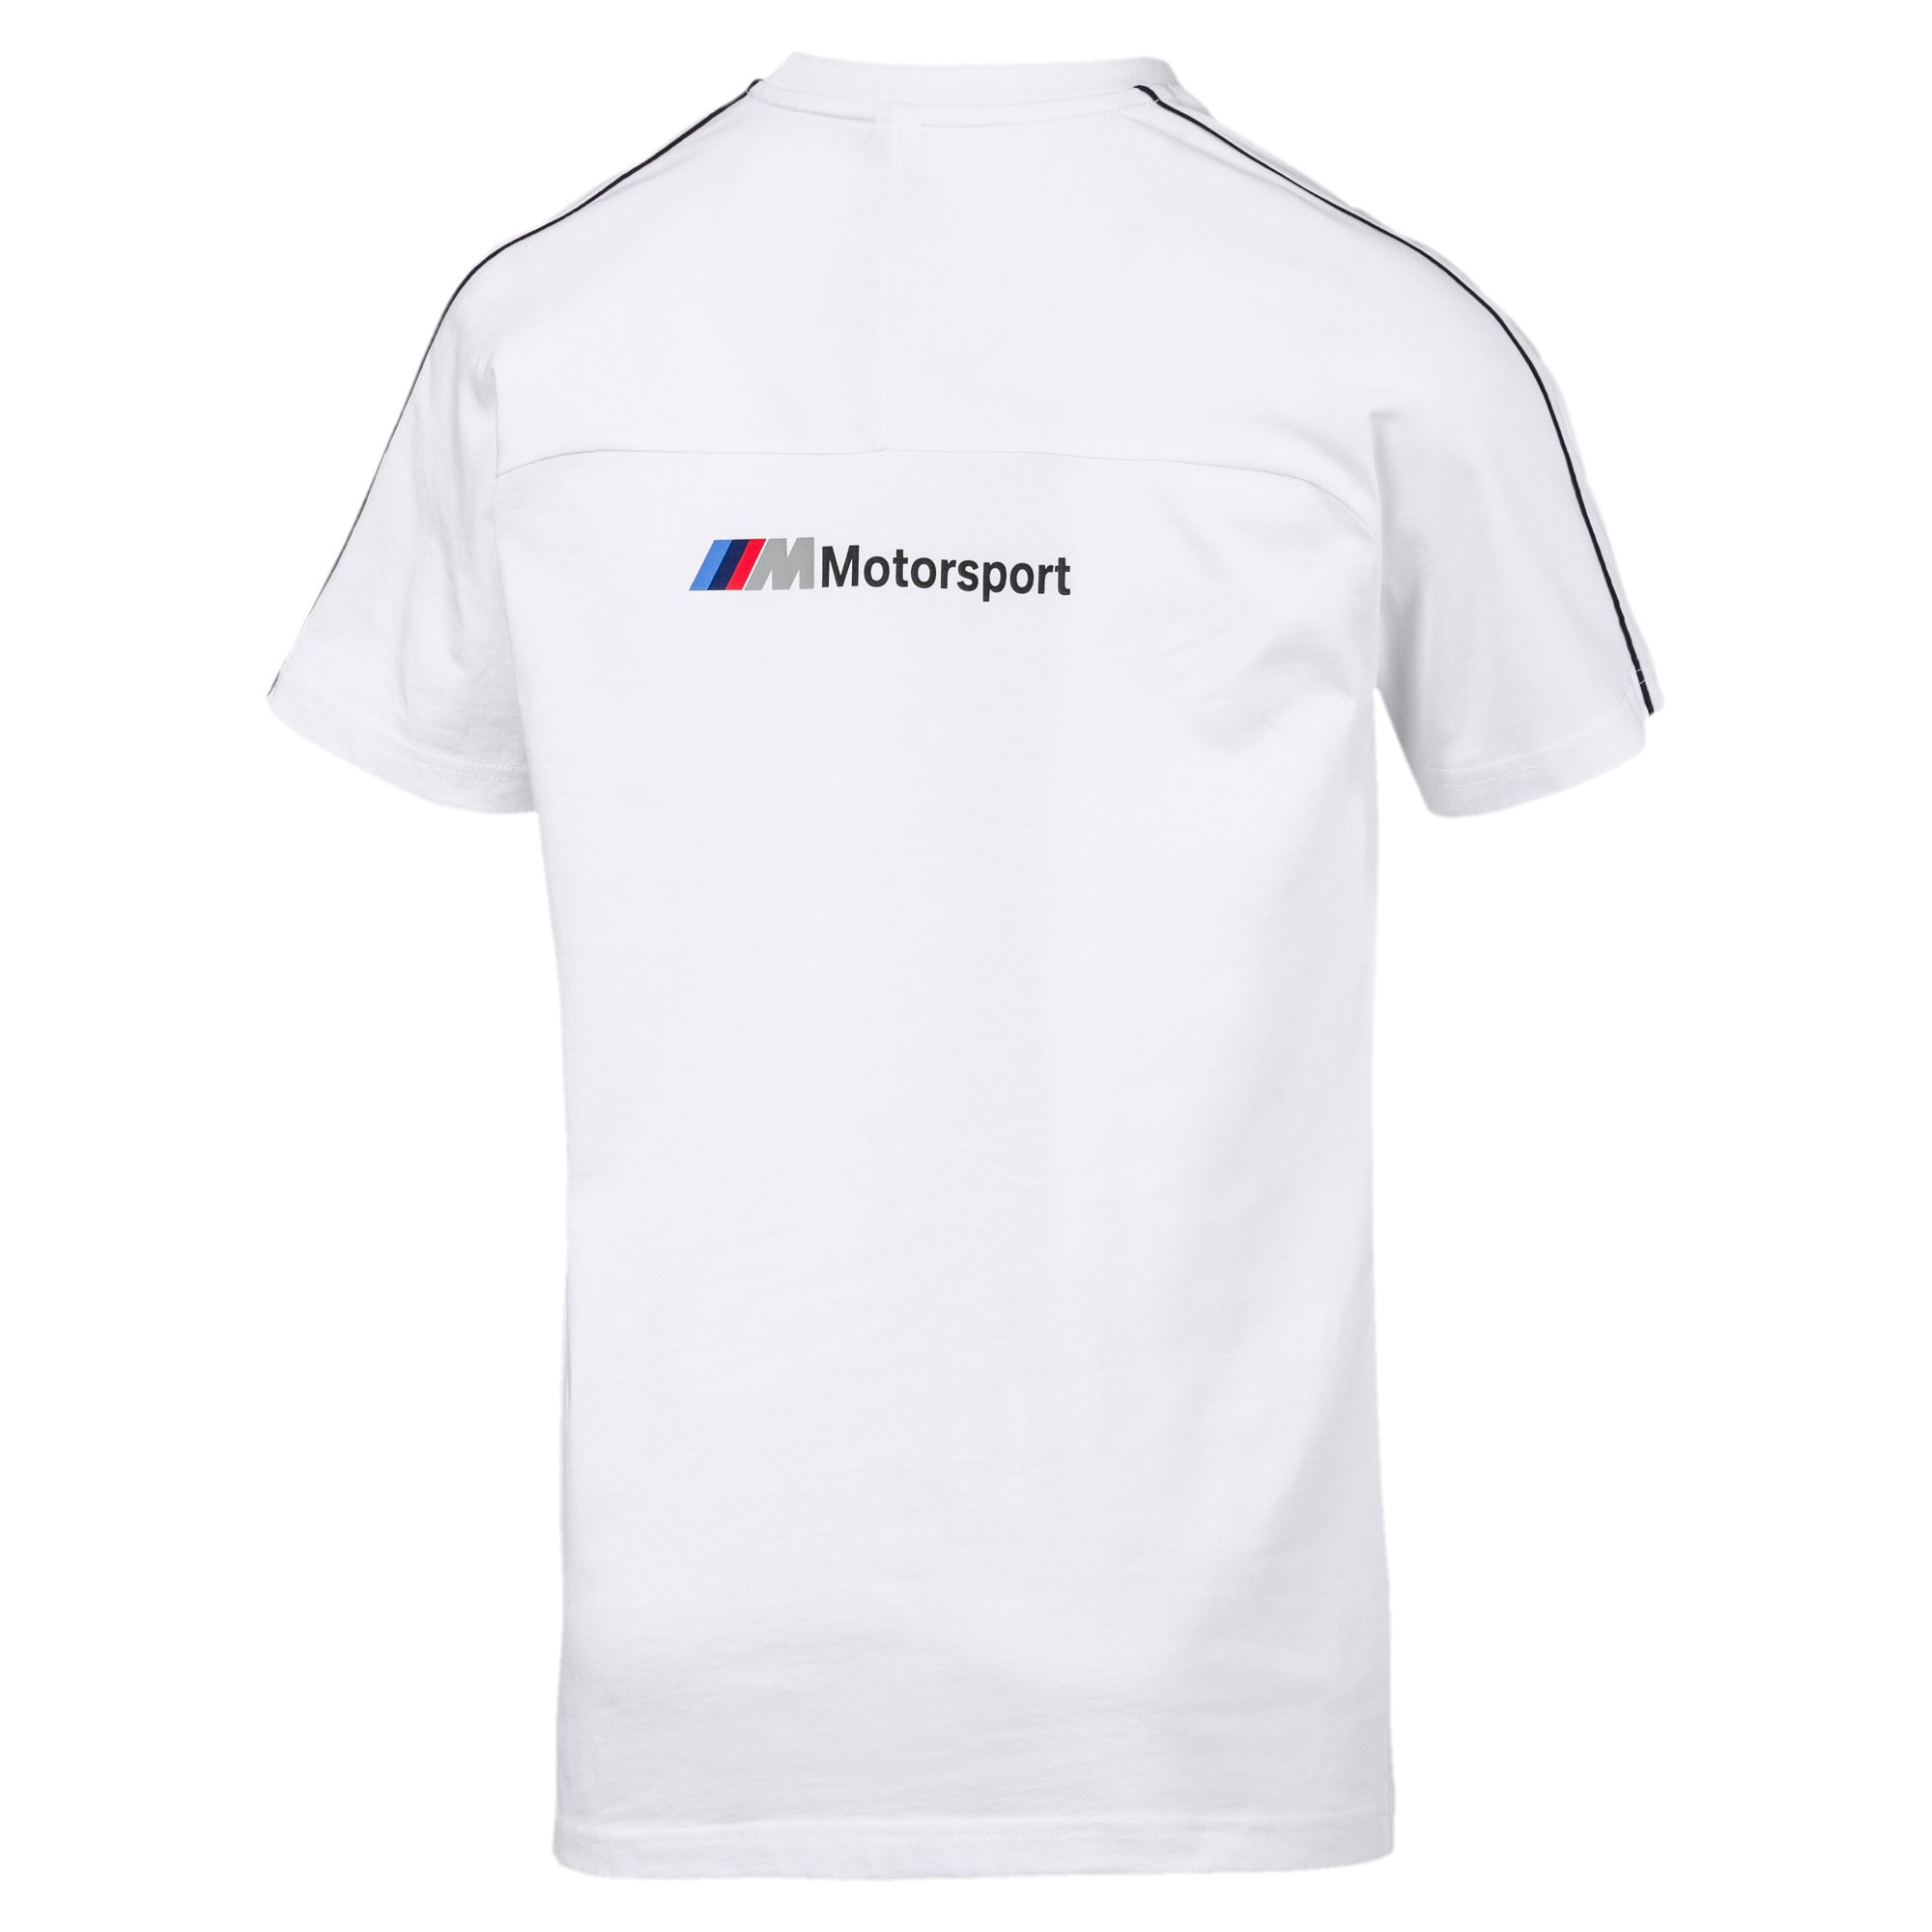 Thumbnail 5 of BMW M Motorsport T7 Men's Tee, Puma White, medium